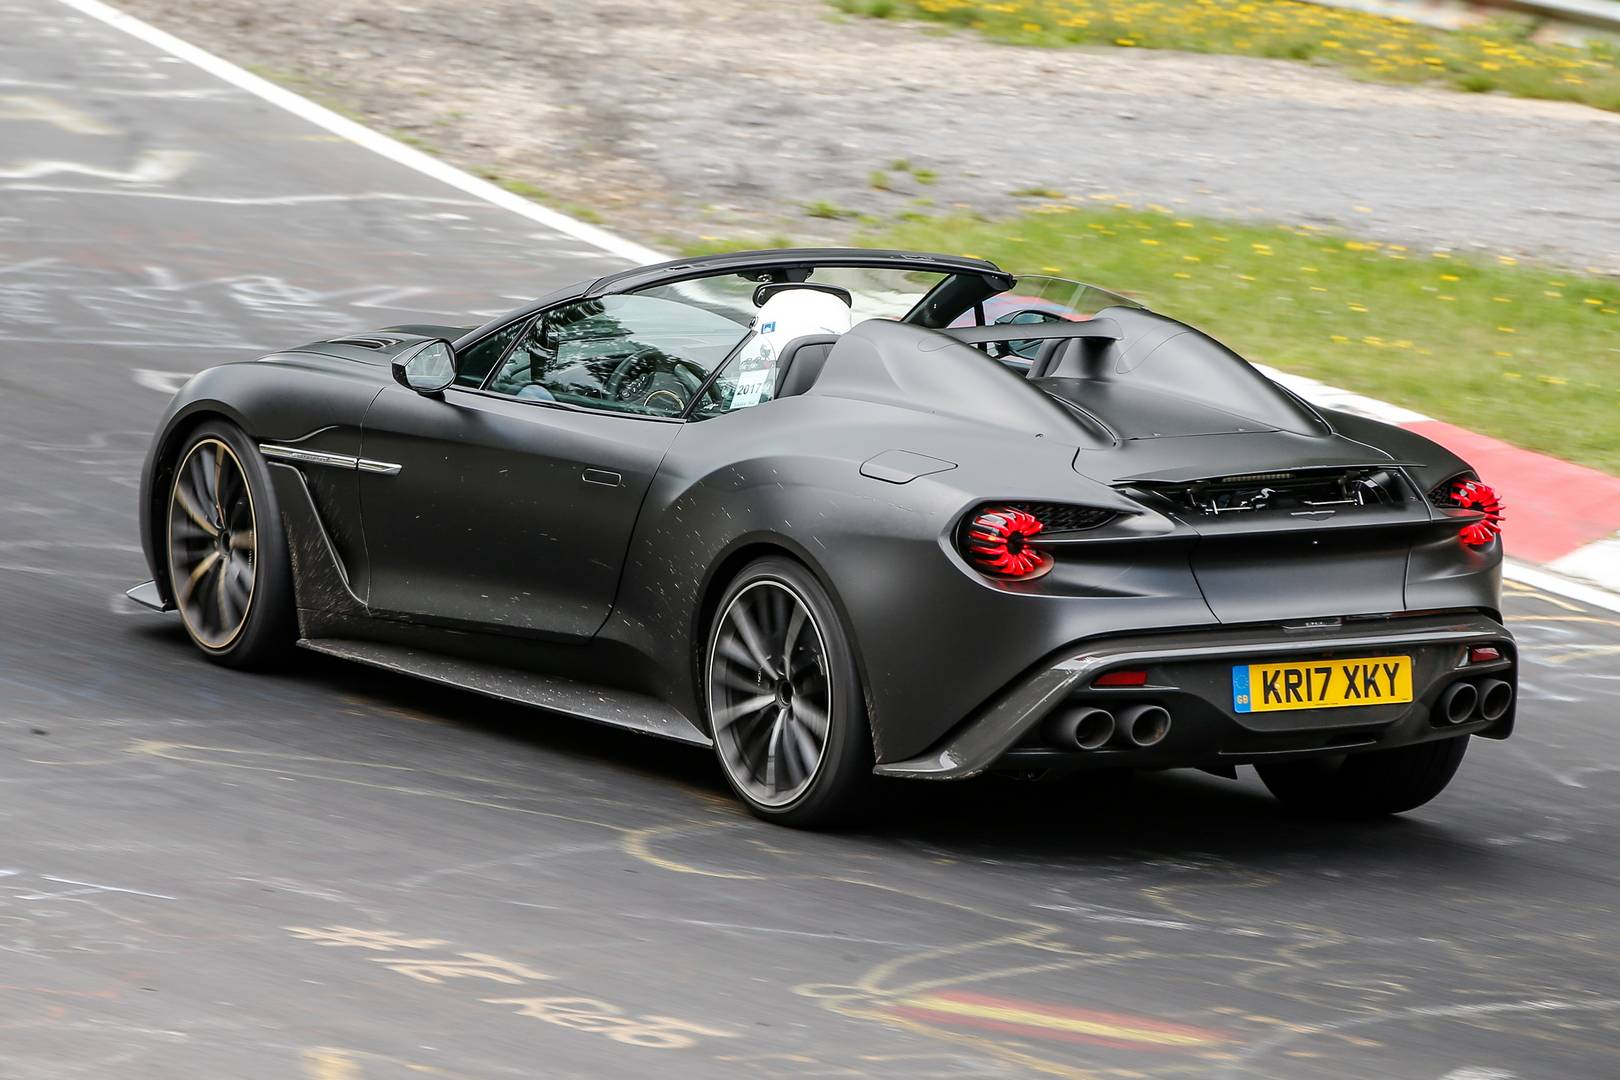 1 of 28 zagato aston martin vanquish speedster seen for the first